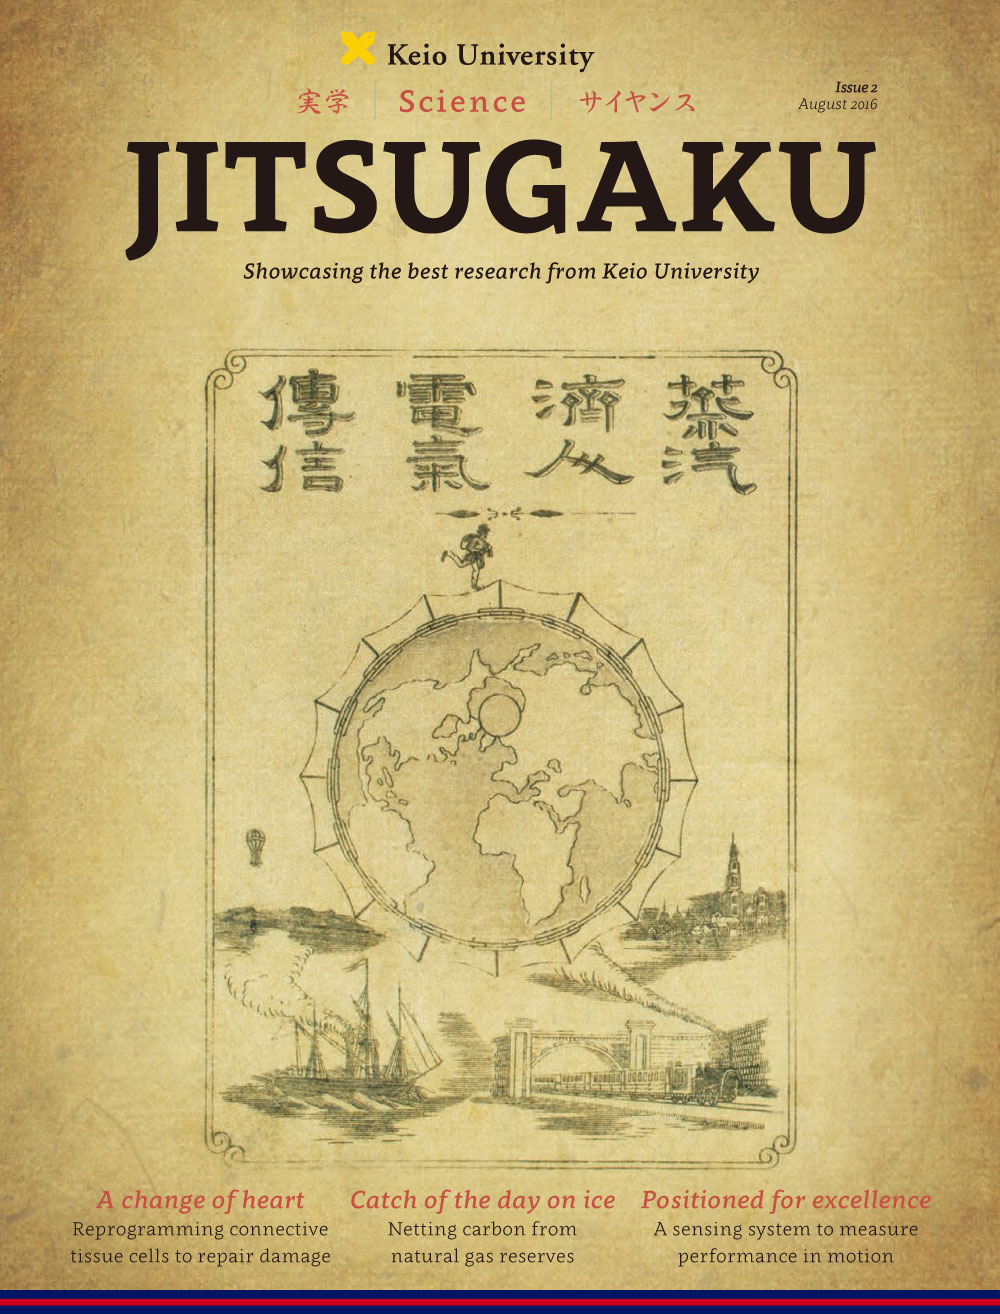 Download the inaugural issue of Jitsugaku